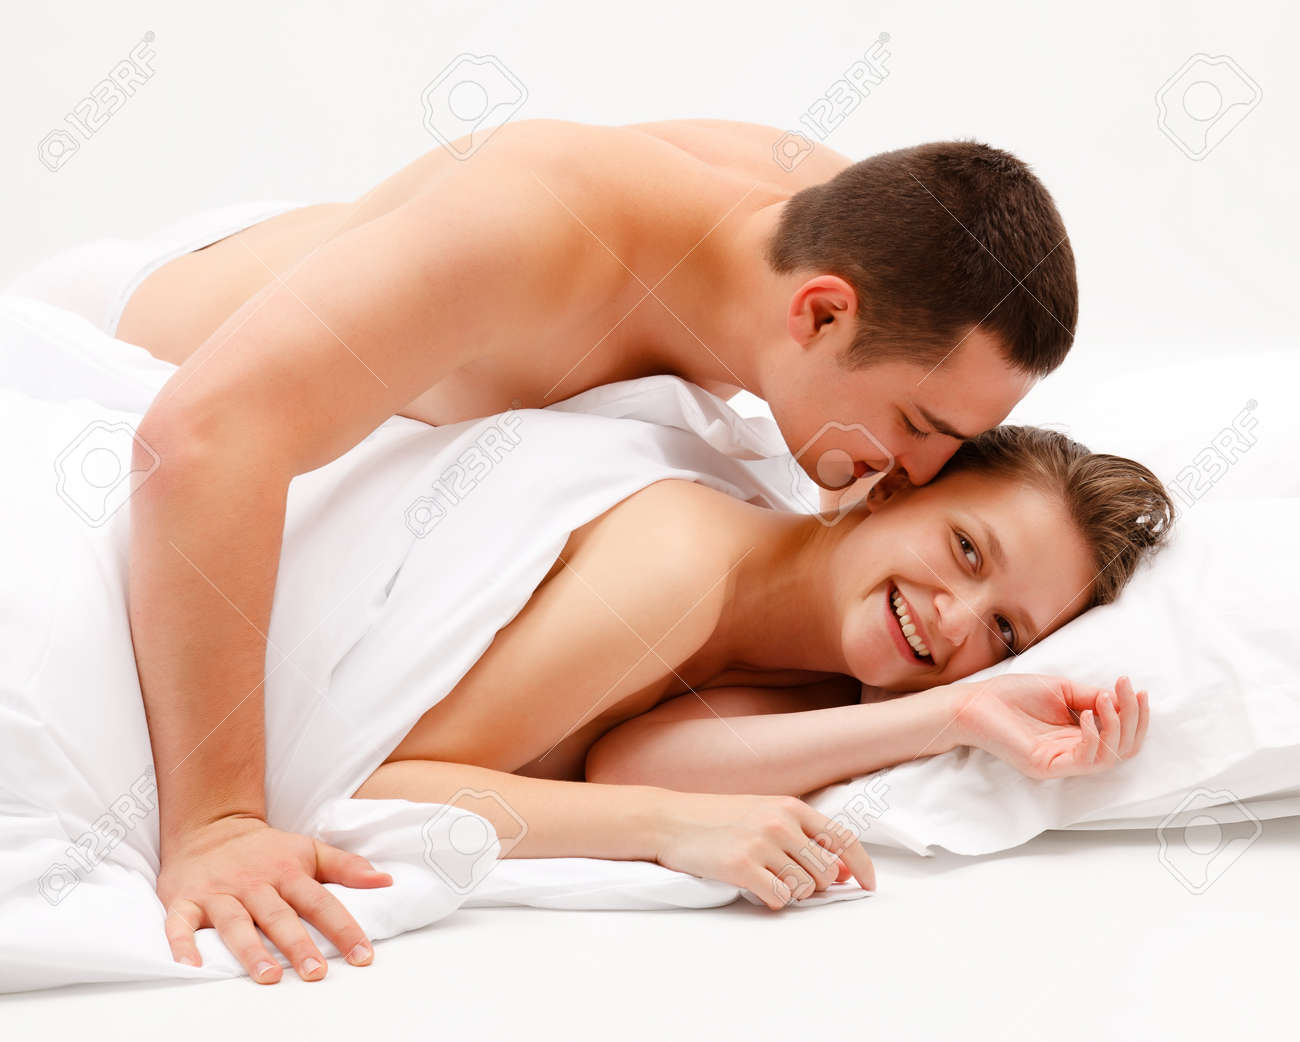 Nude in bed guy and woman